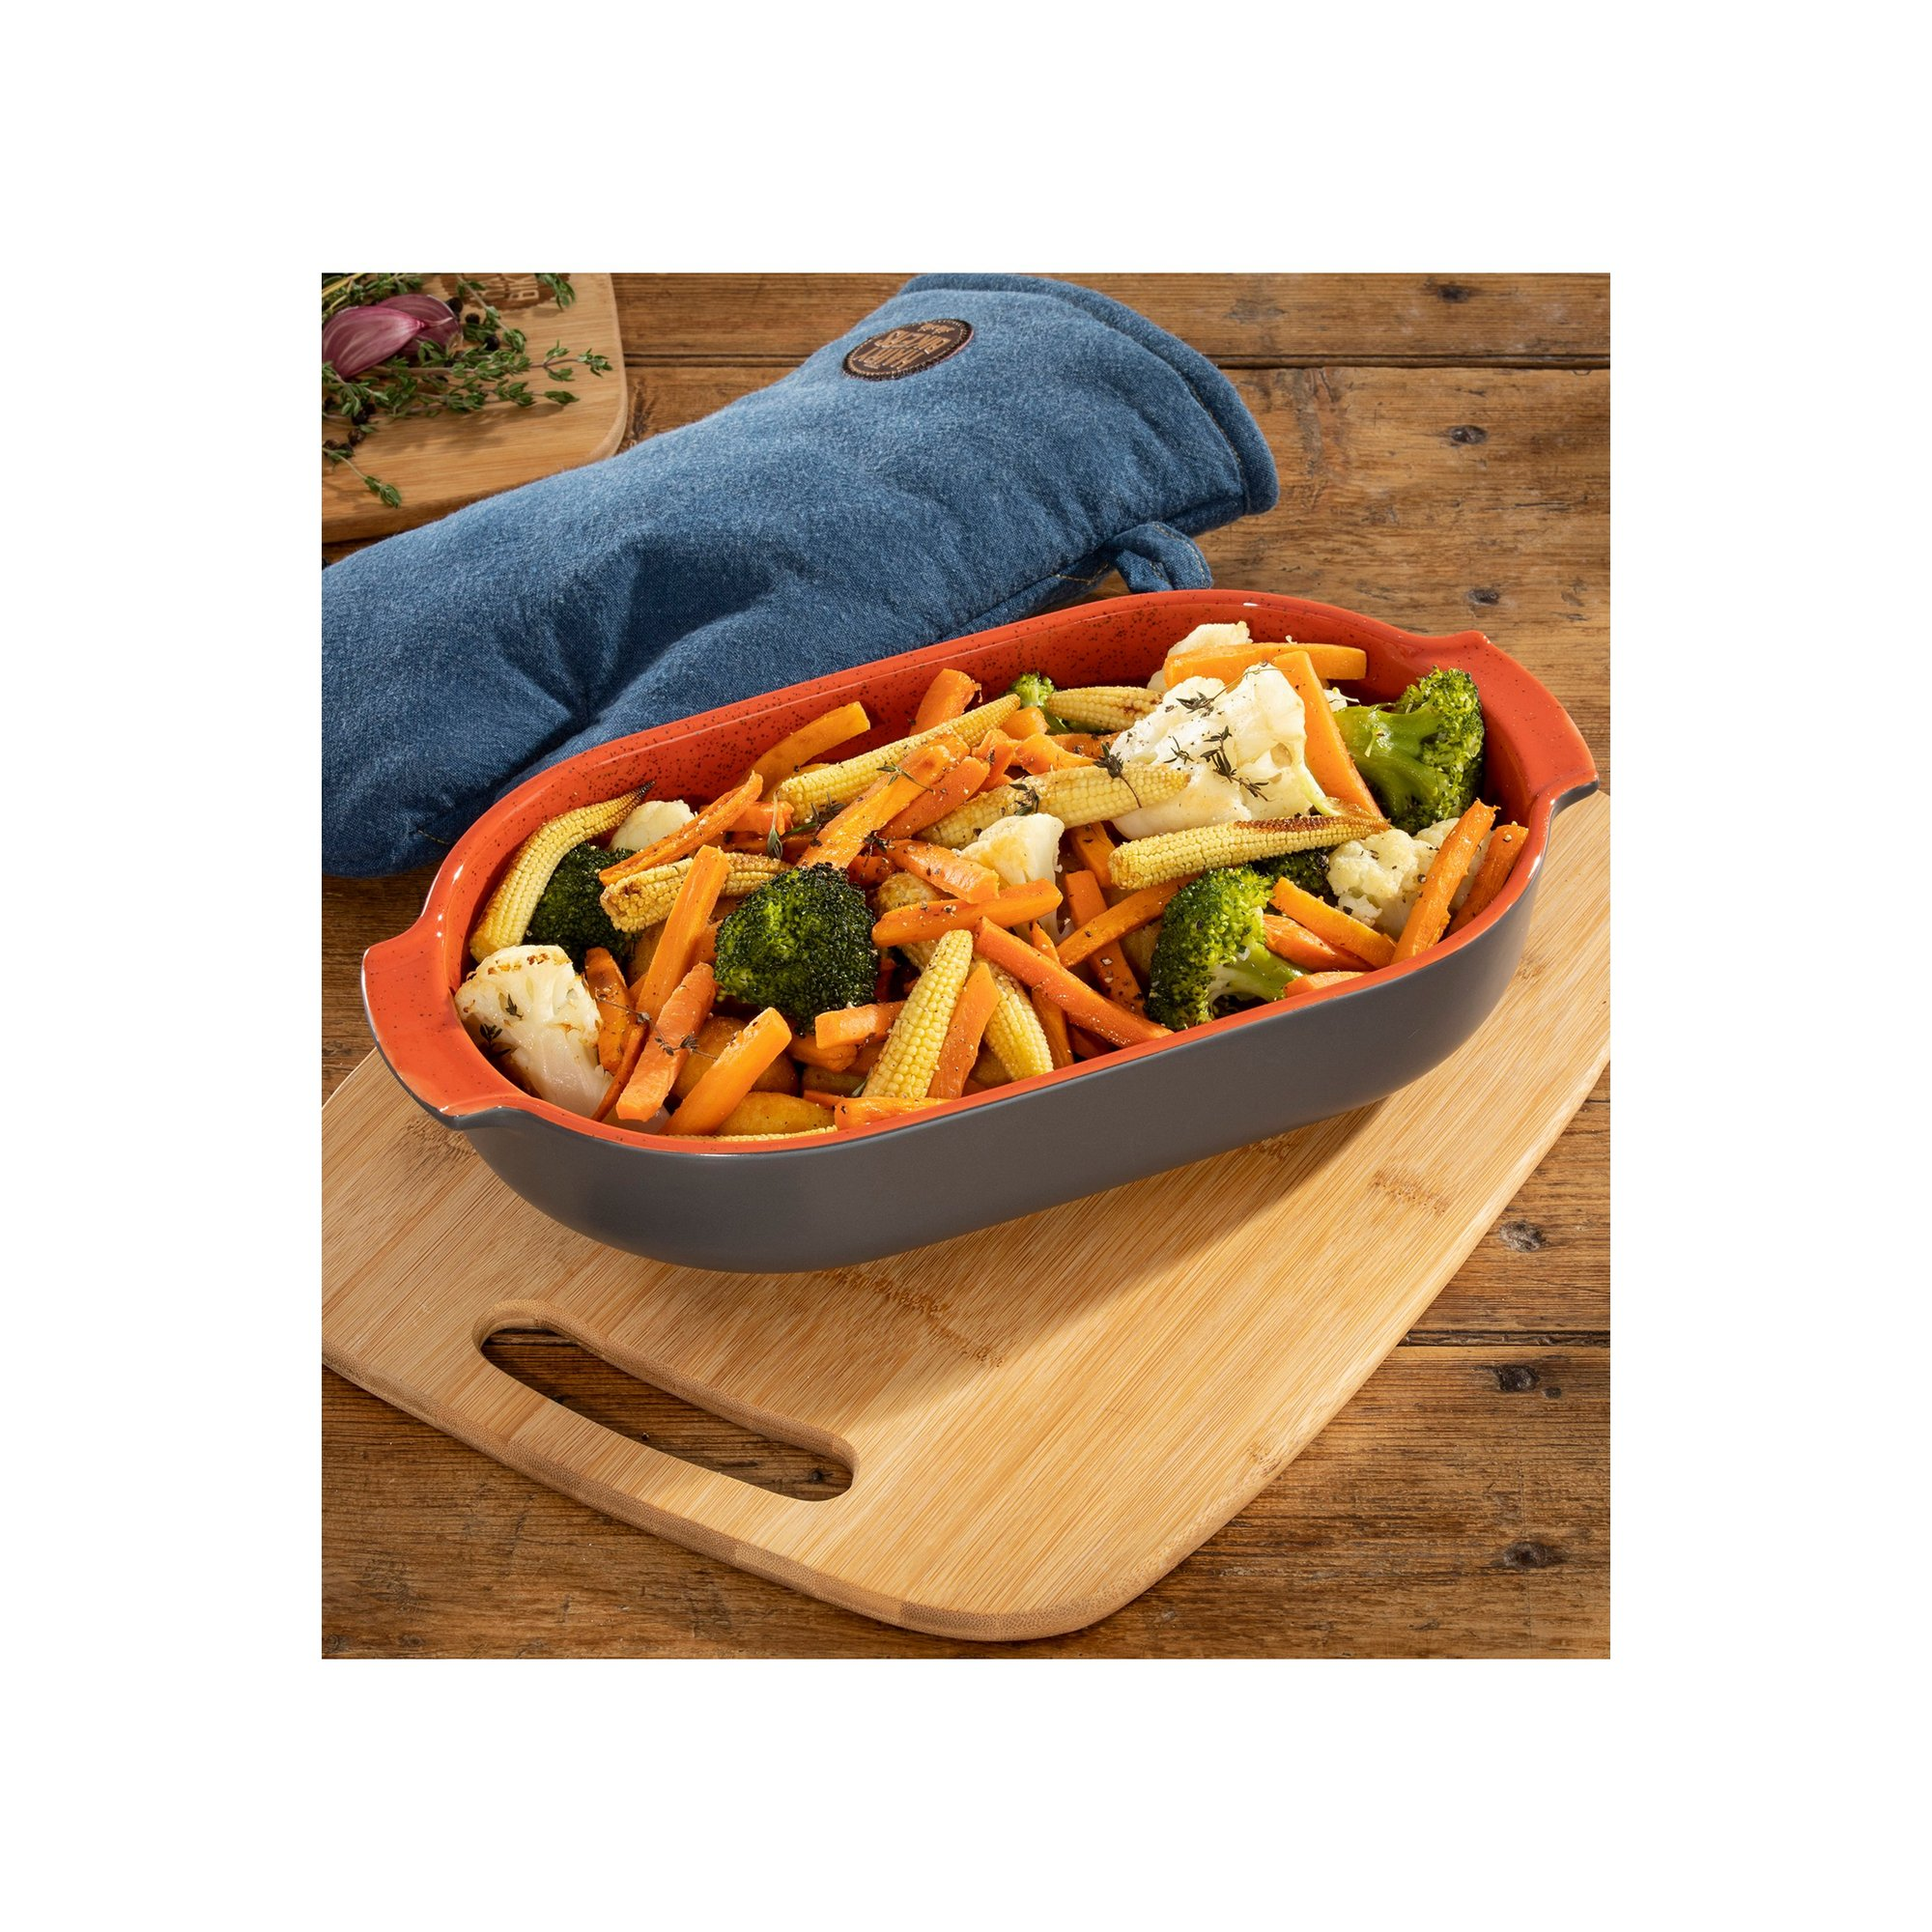 Image of Hairy Bikers Large Oval Baking Dish